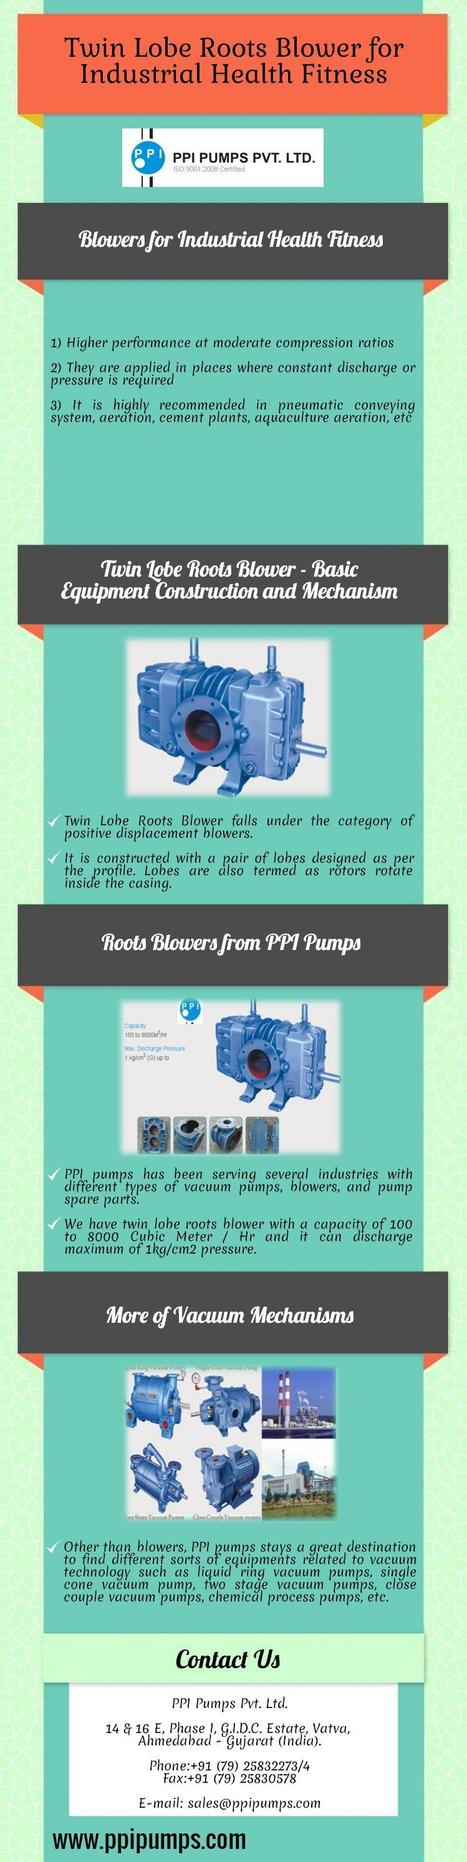 Twin Lobe Roots Blower for Industrial Health Fitness | PPI Pumps Pvt. Ltd. | Scoop.it